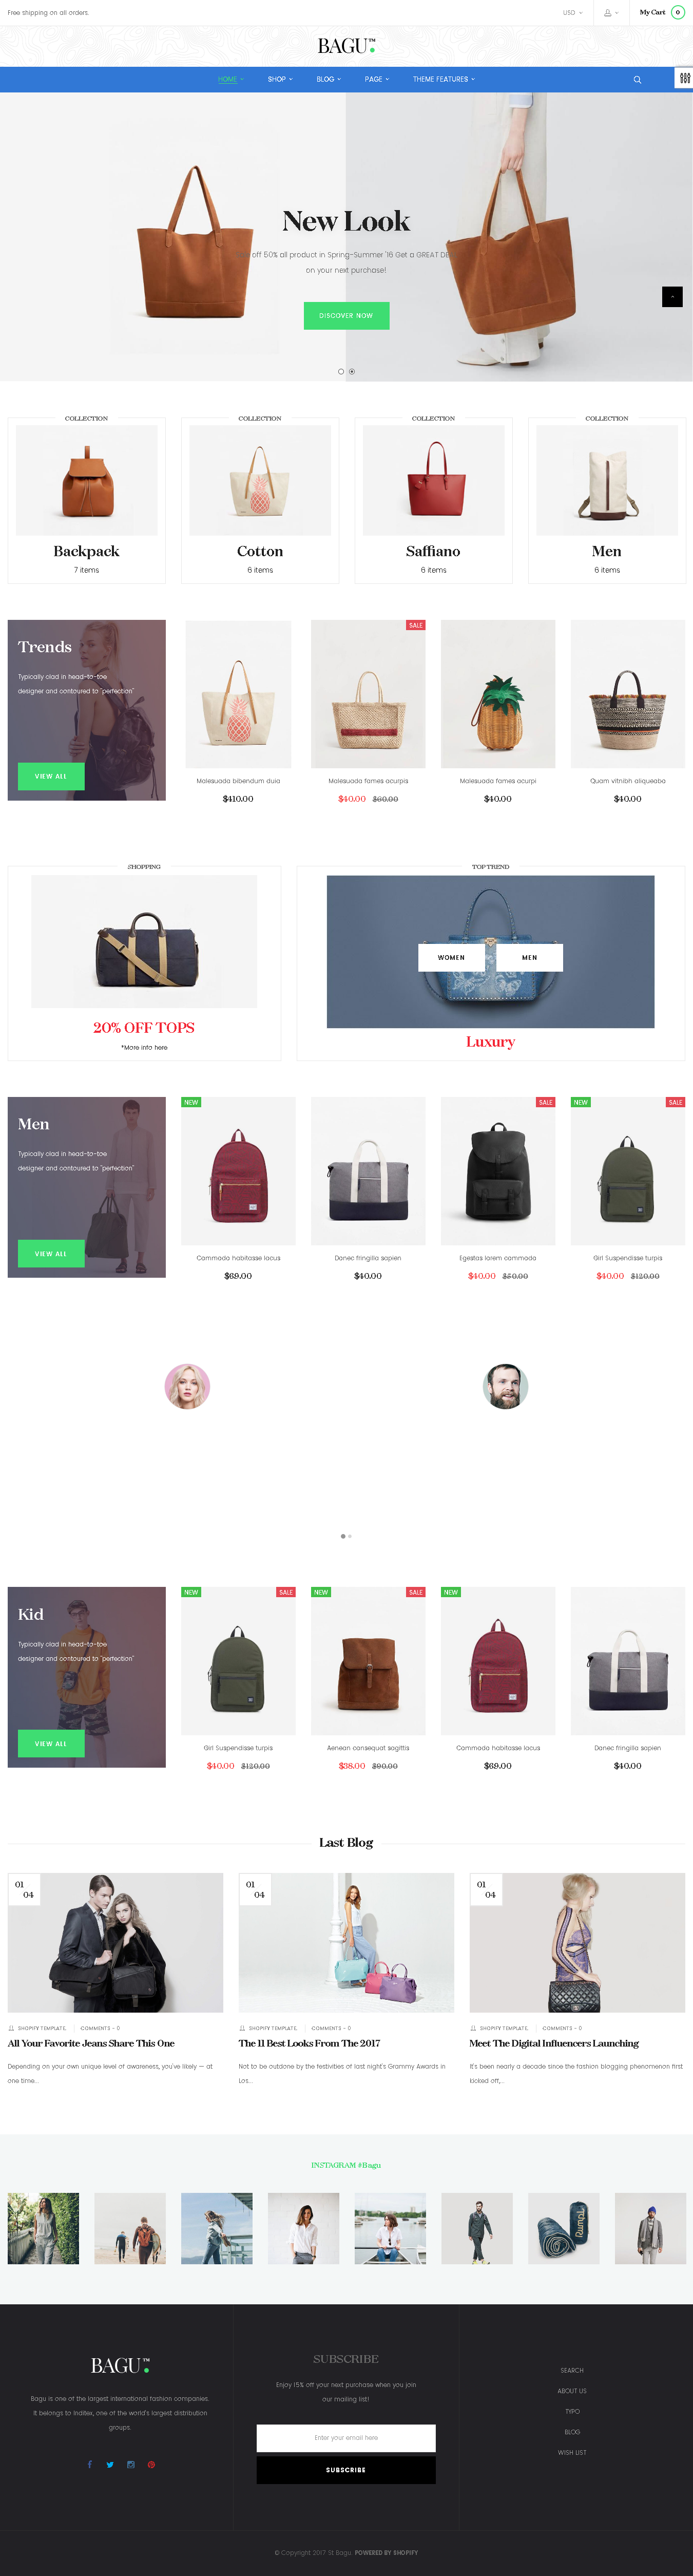 5 Best SHOPIFY Premium Themes Collection for Handbags Store 2017 - ST Bagu Shopify Theme